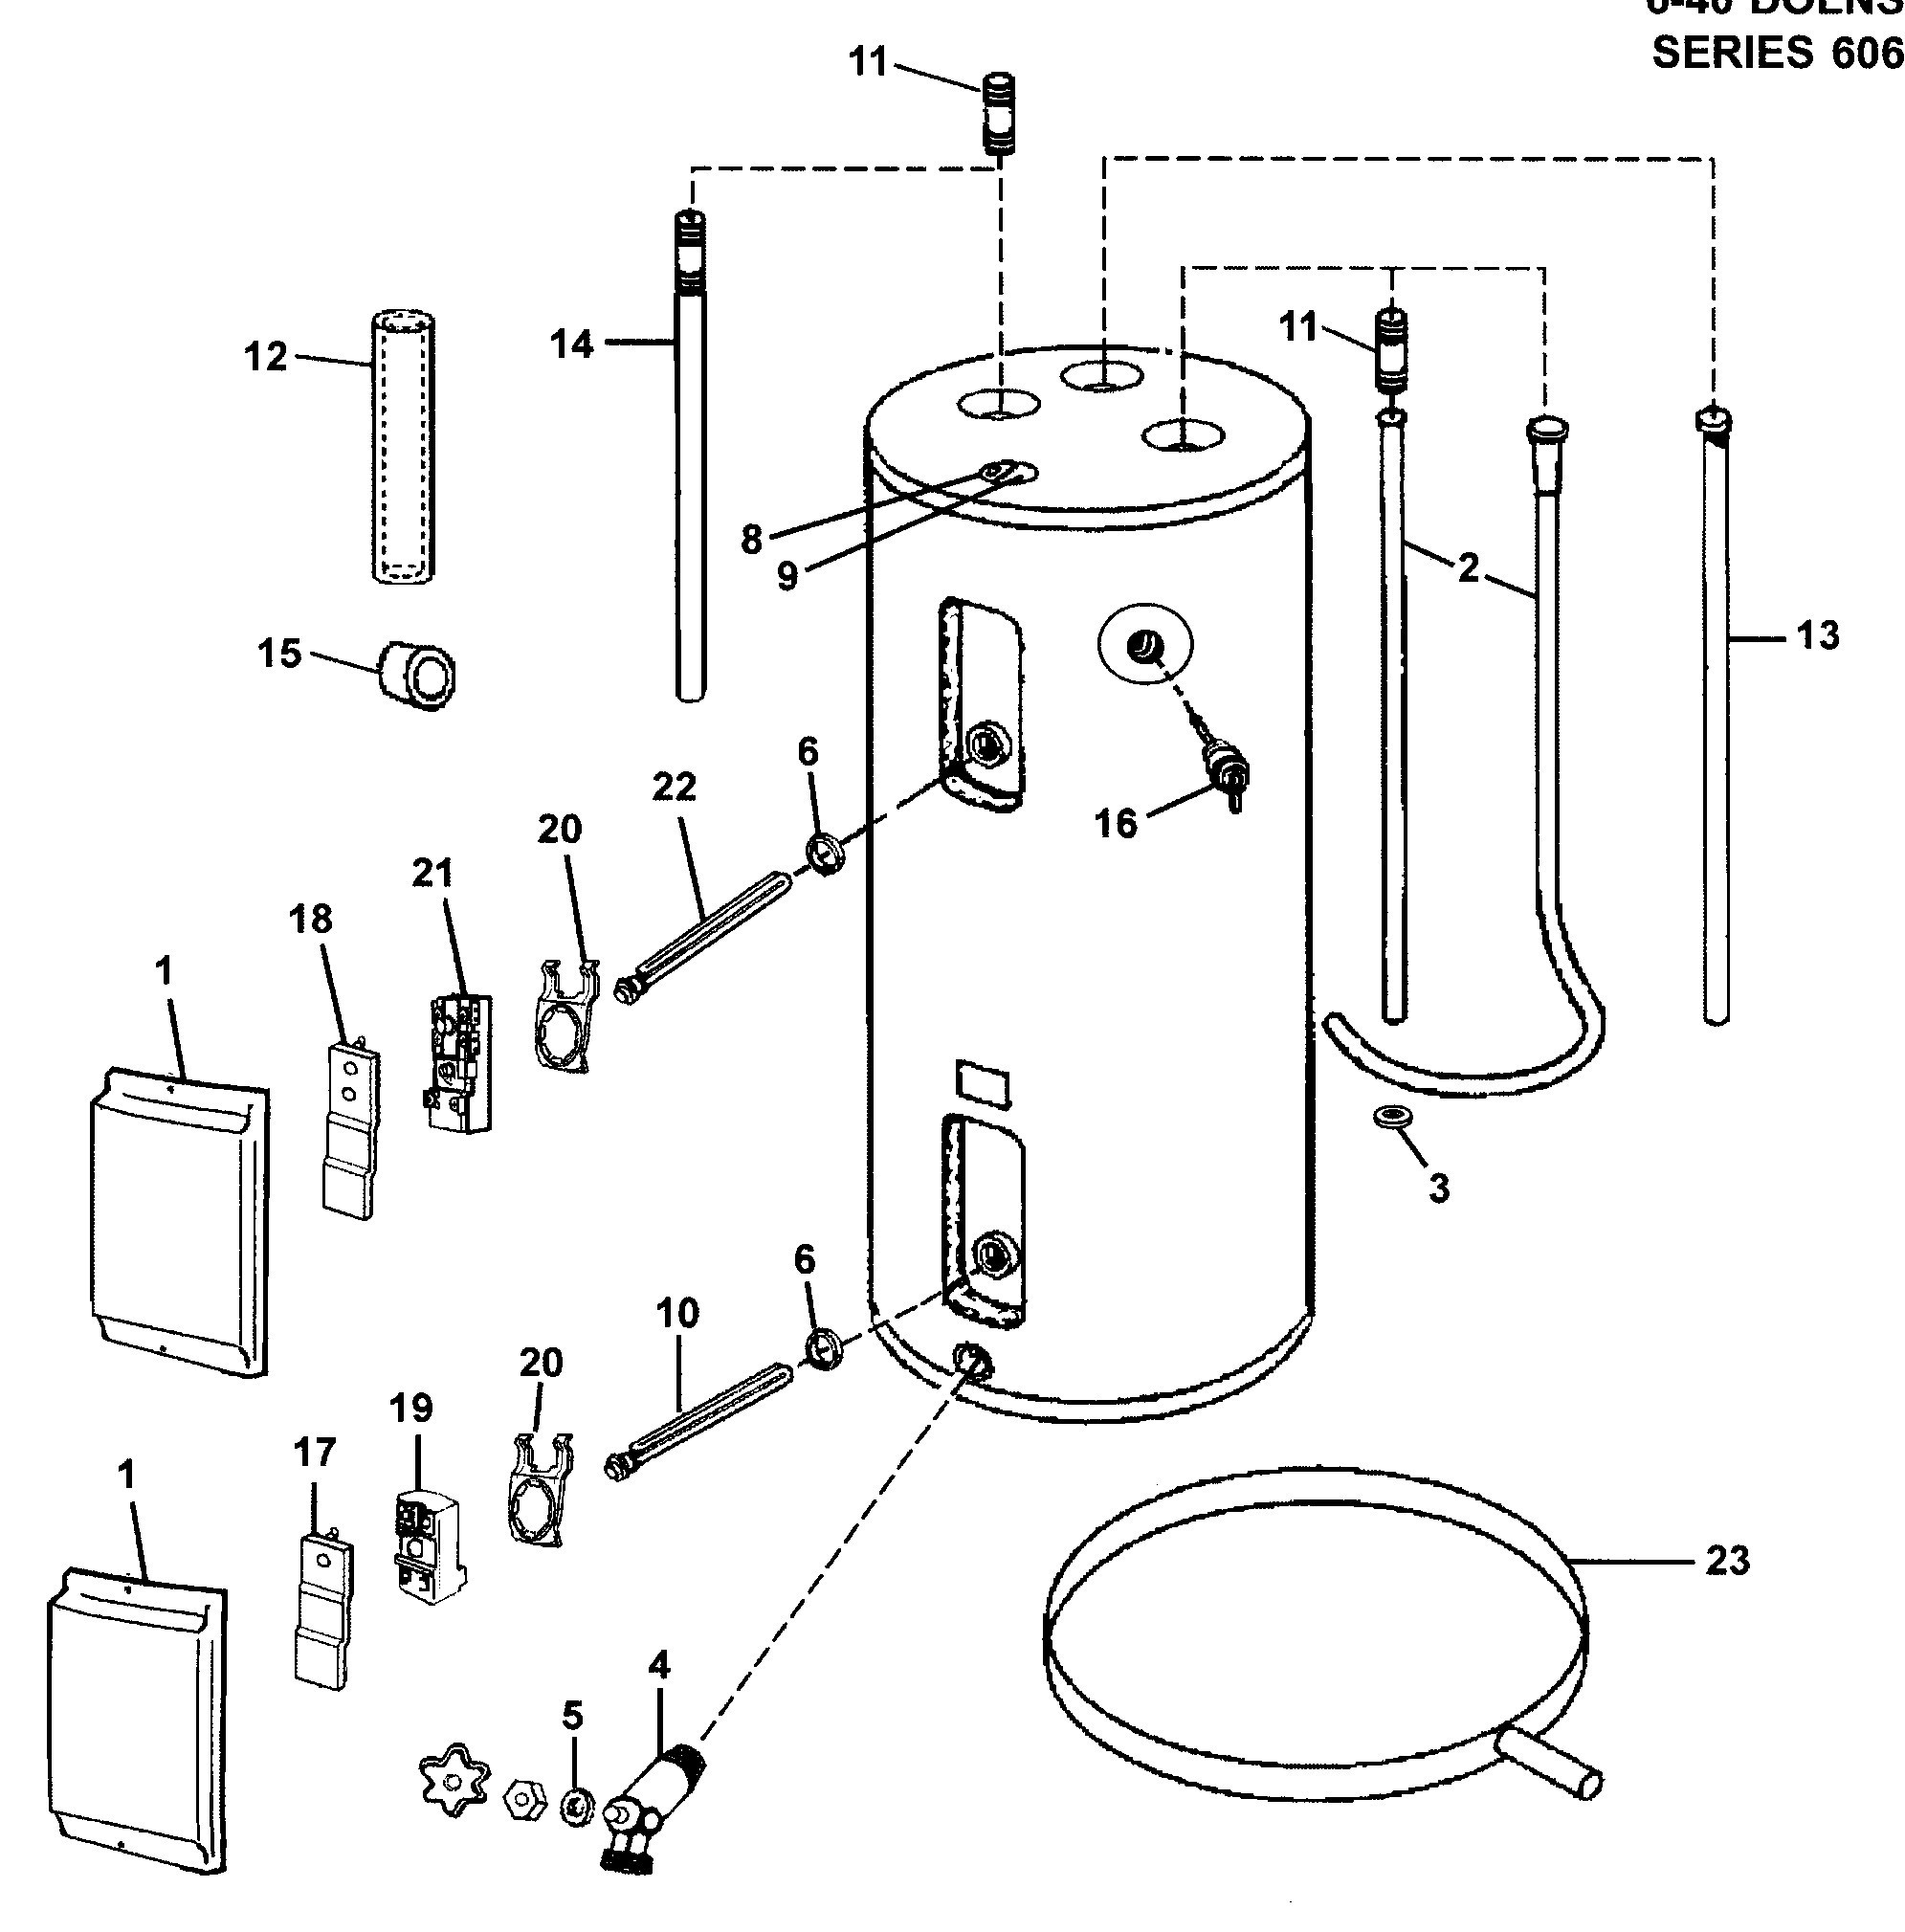 Wiring Diagram Electric Water Heater New Electric Water Heater Parts Diagram